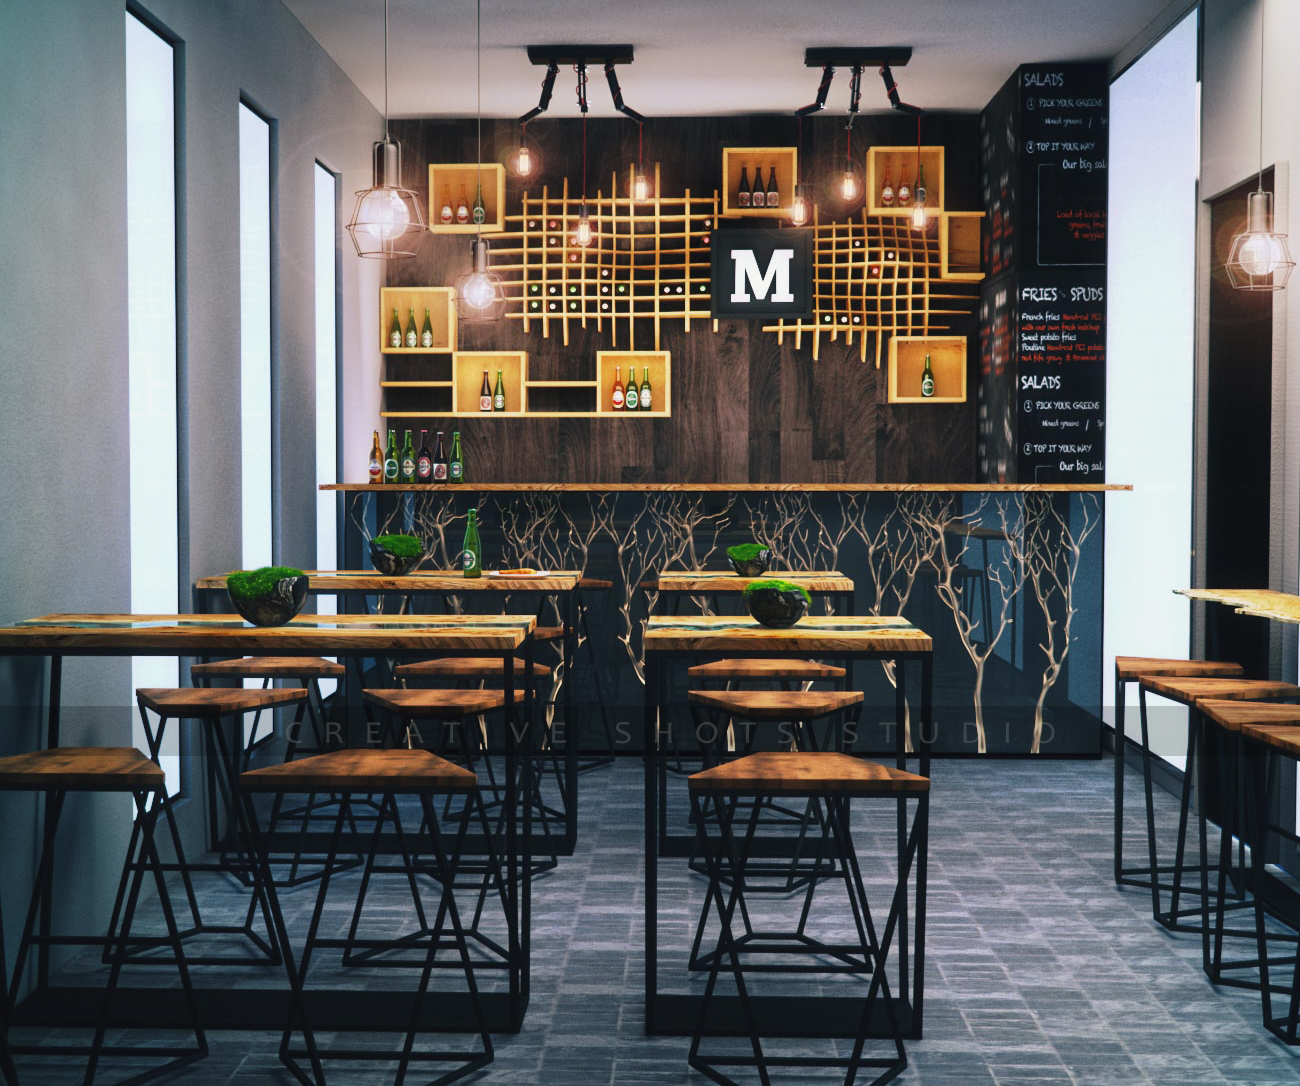 Upmarket serious restaurant d design for a company by